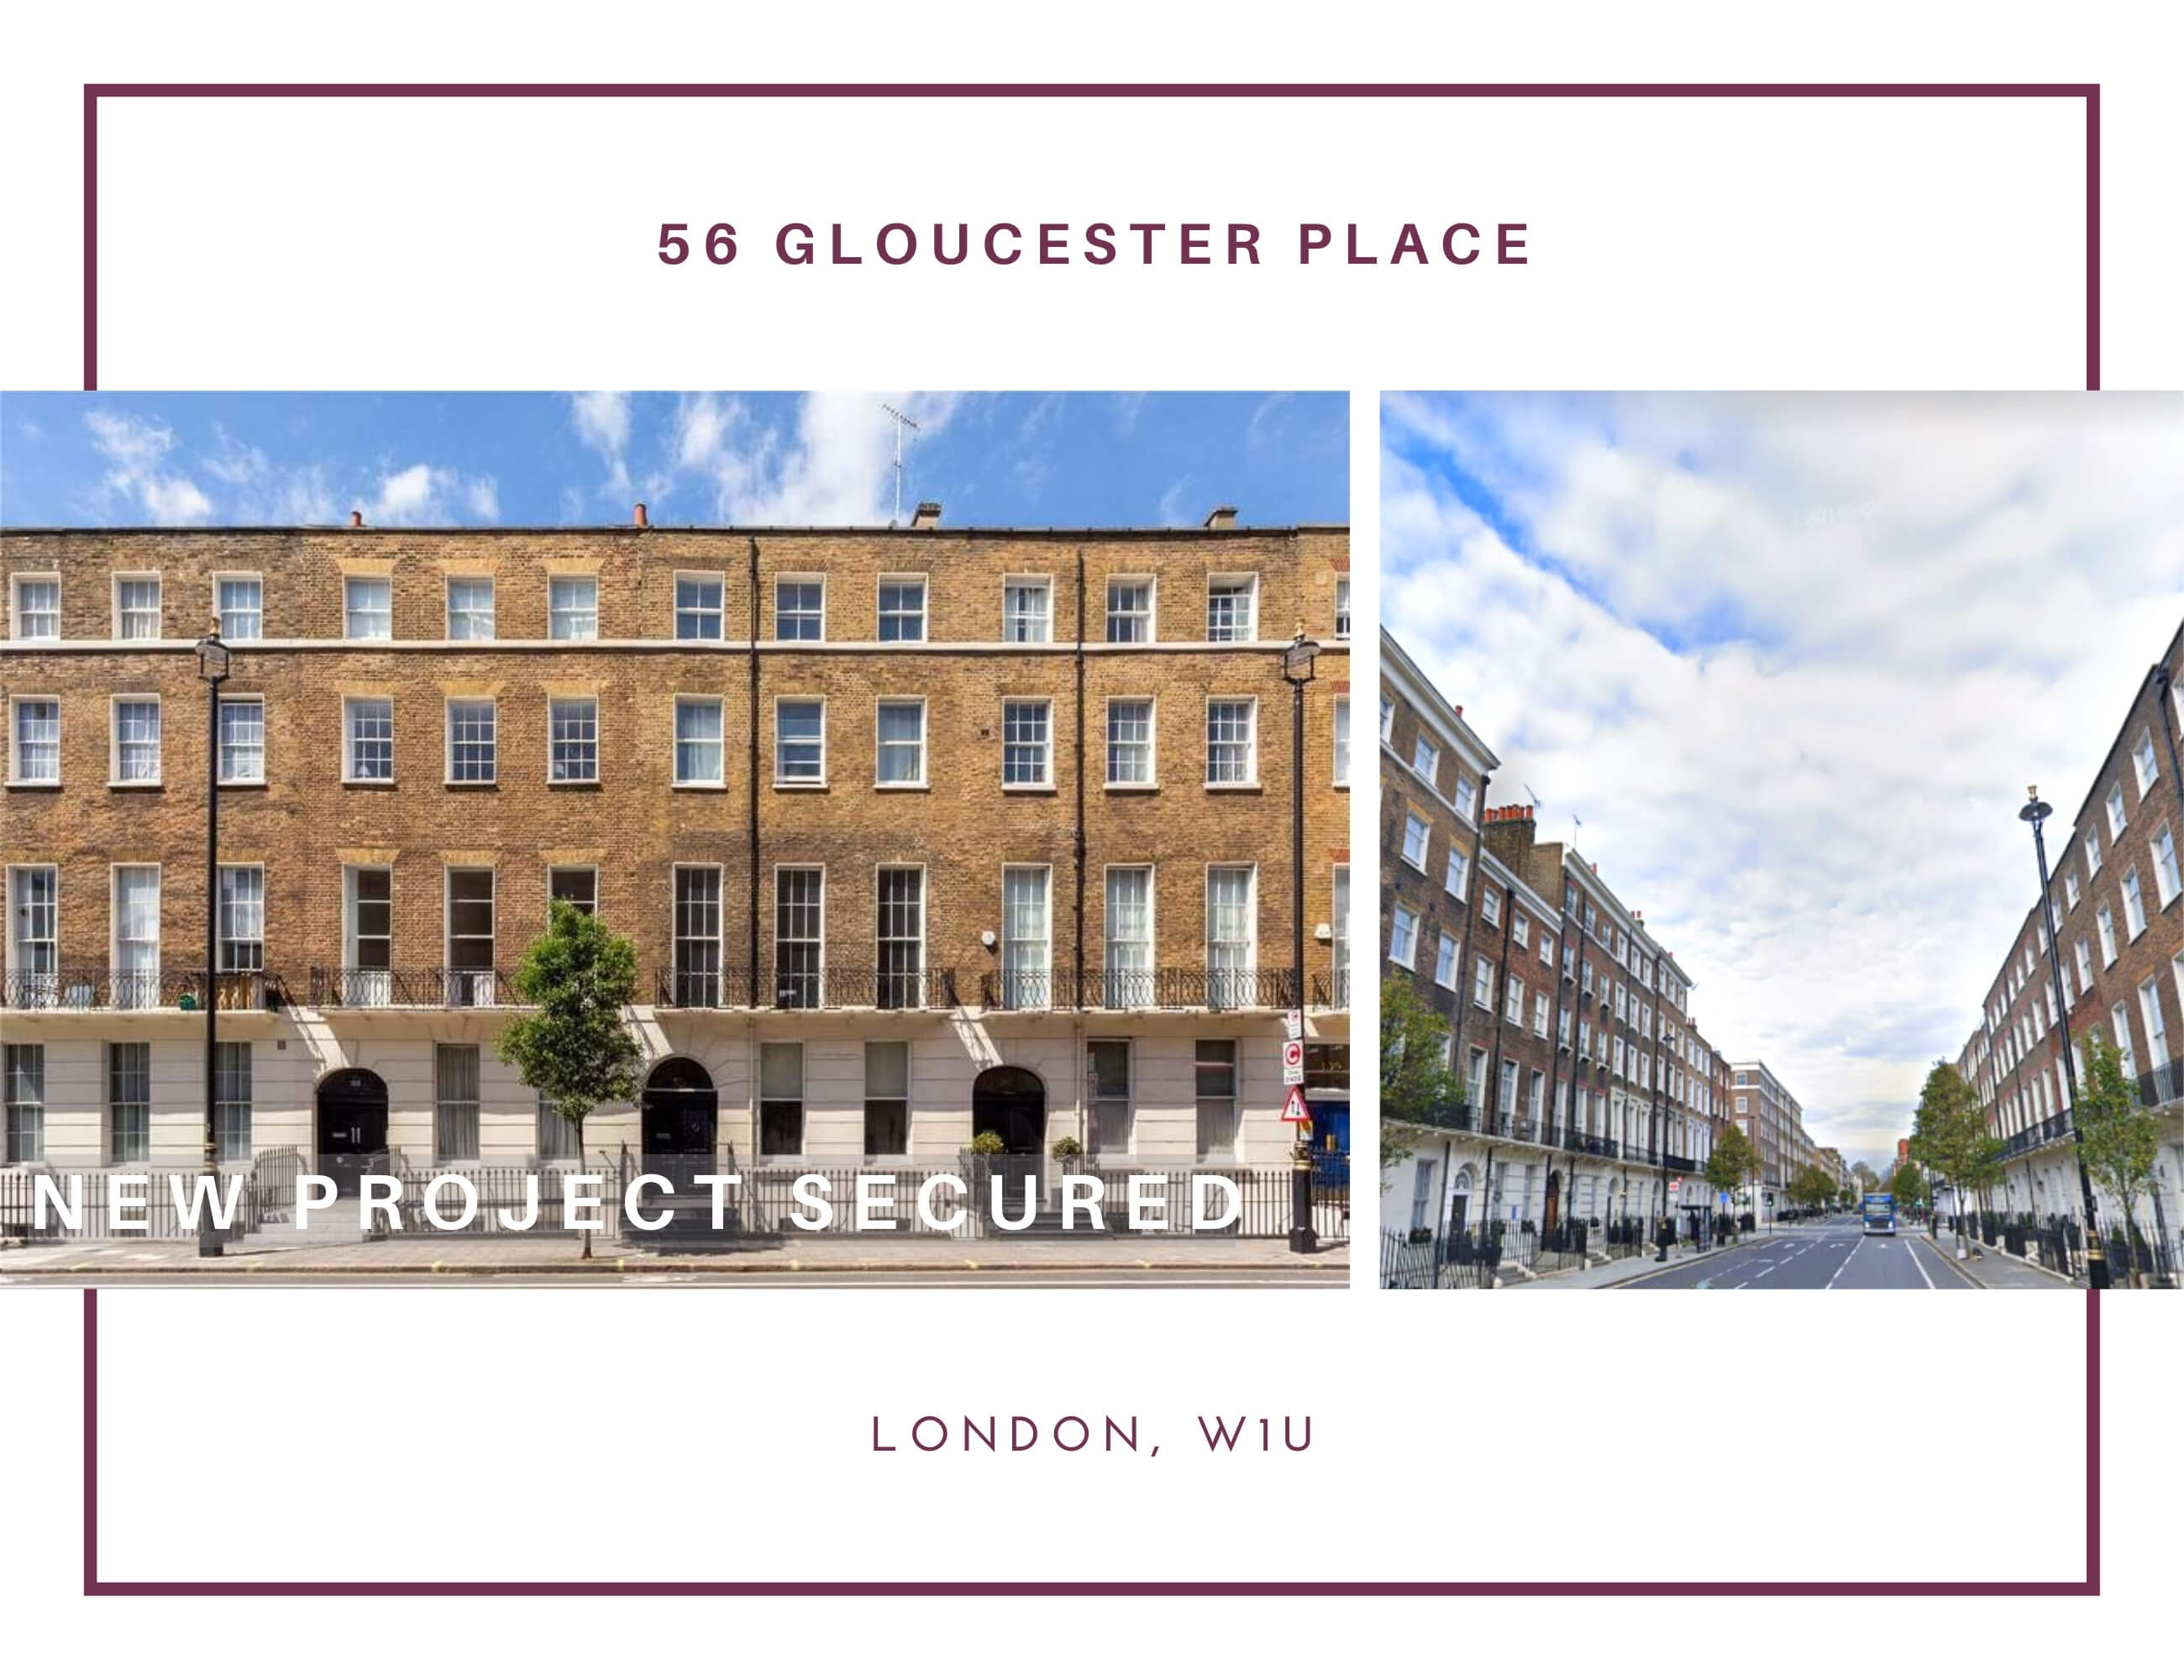 REMEDIAL REFURBISHMENT AND DECORATION AT 56 GLOUCESTER PLACE